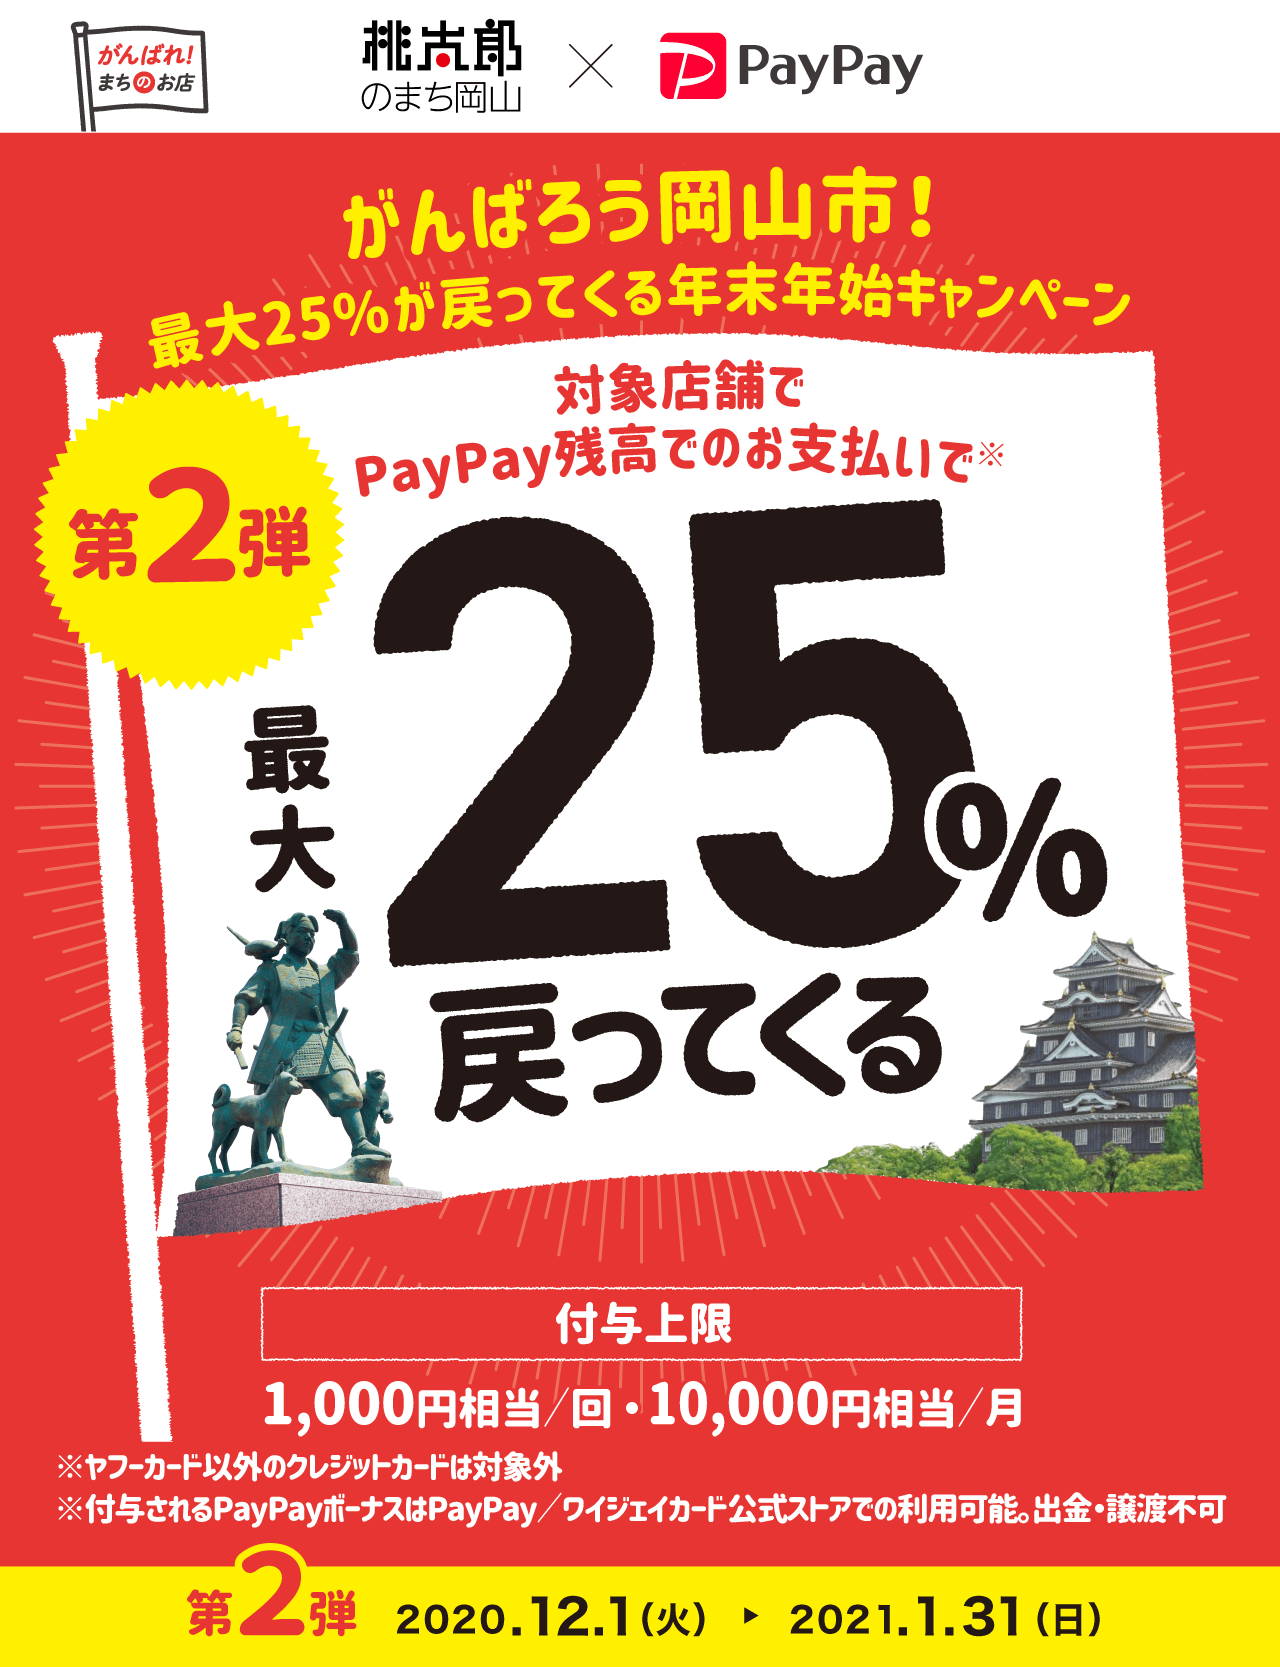 PayPay25%キャッシュバック